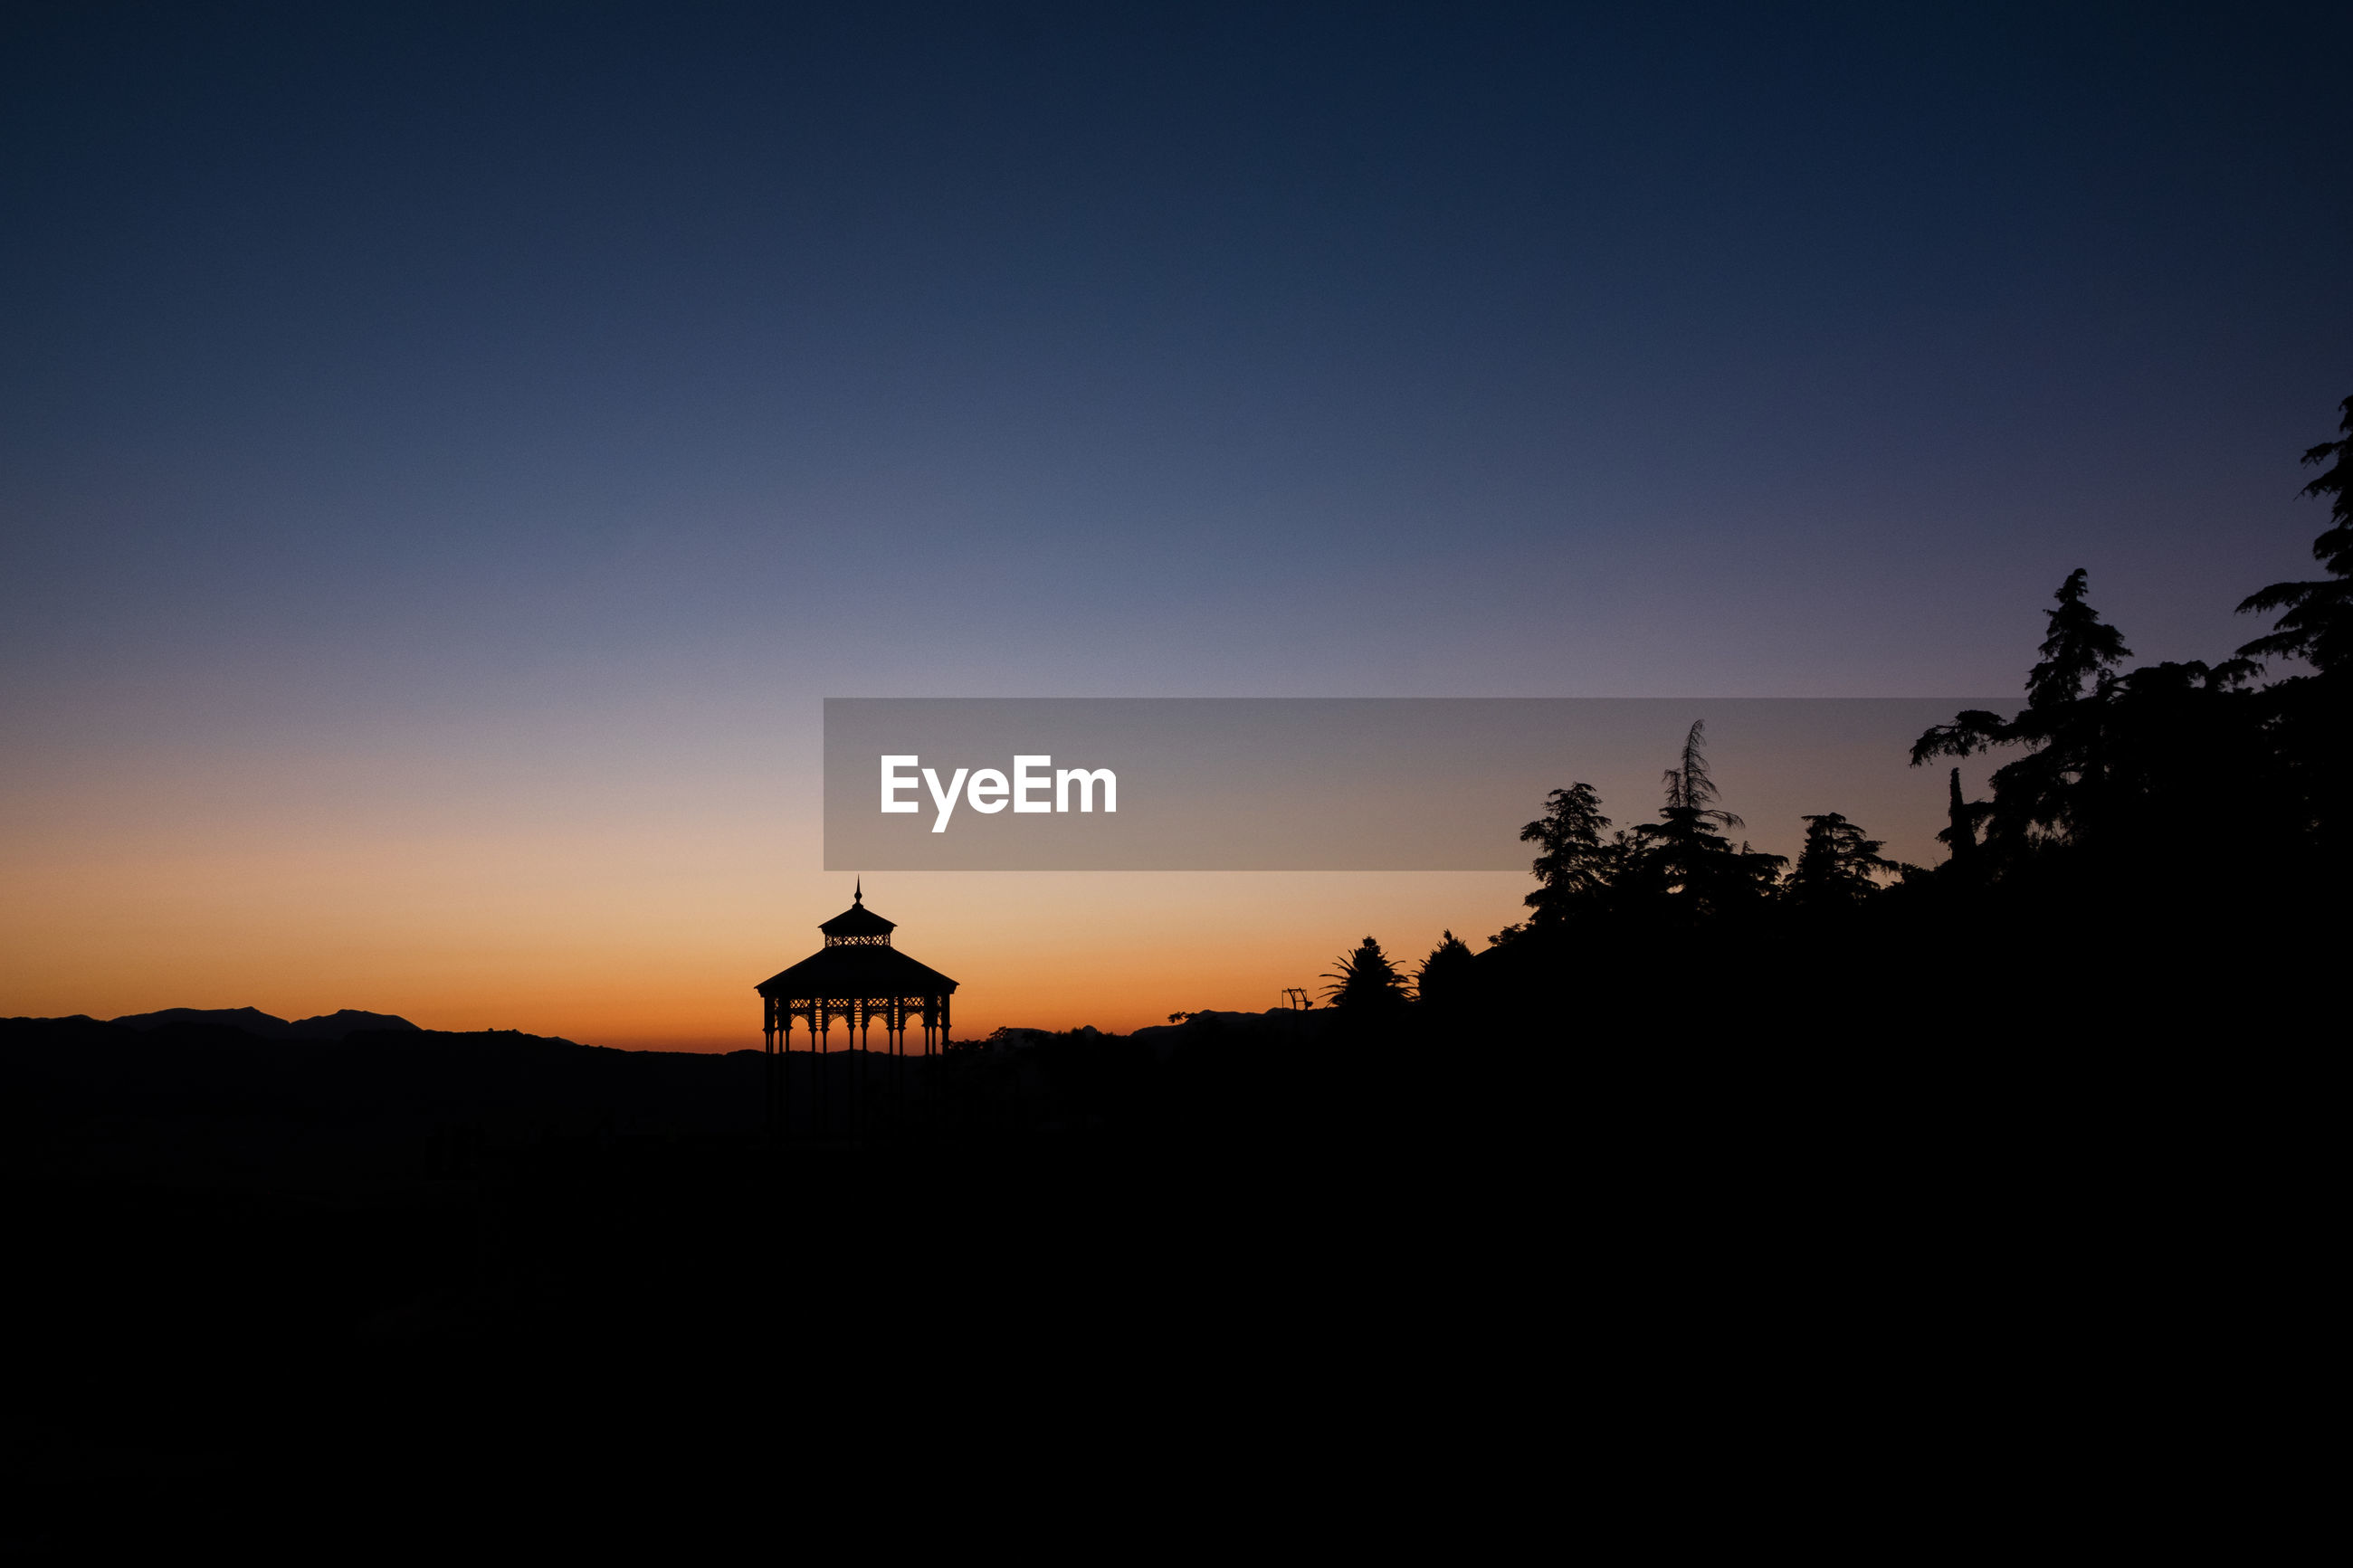 Silhouette of a building against clear sky at sunset